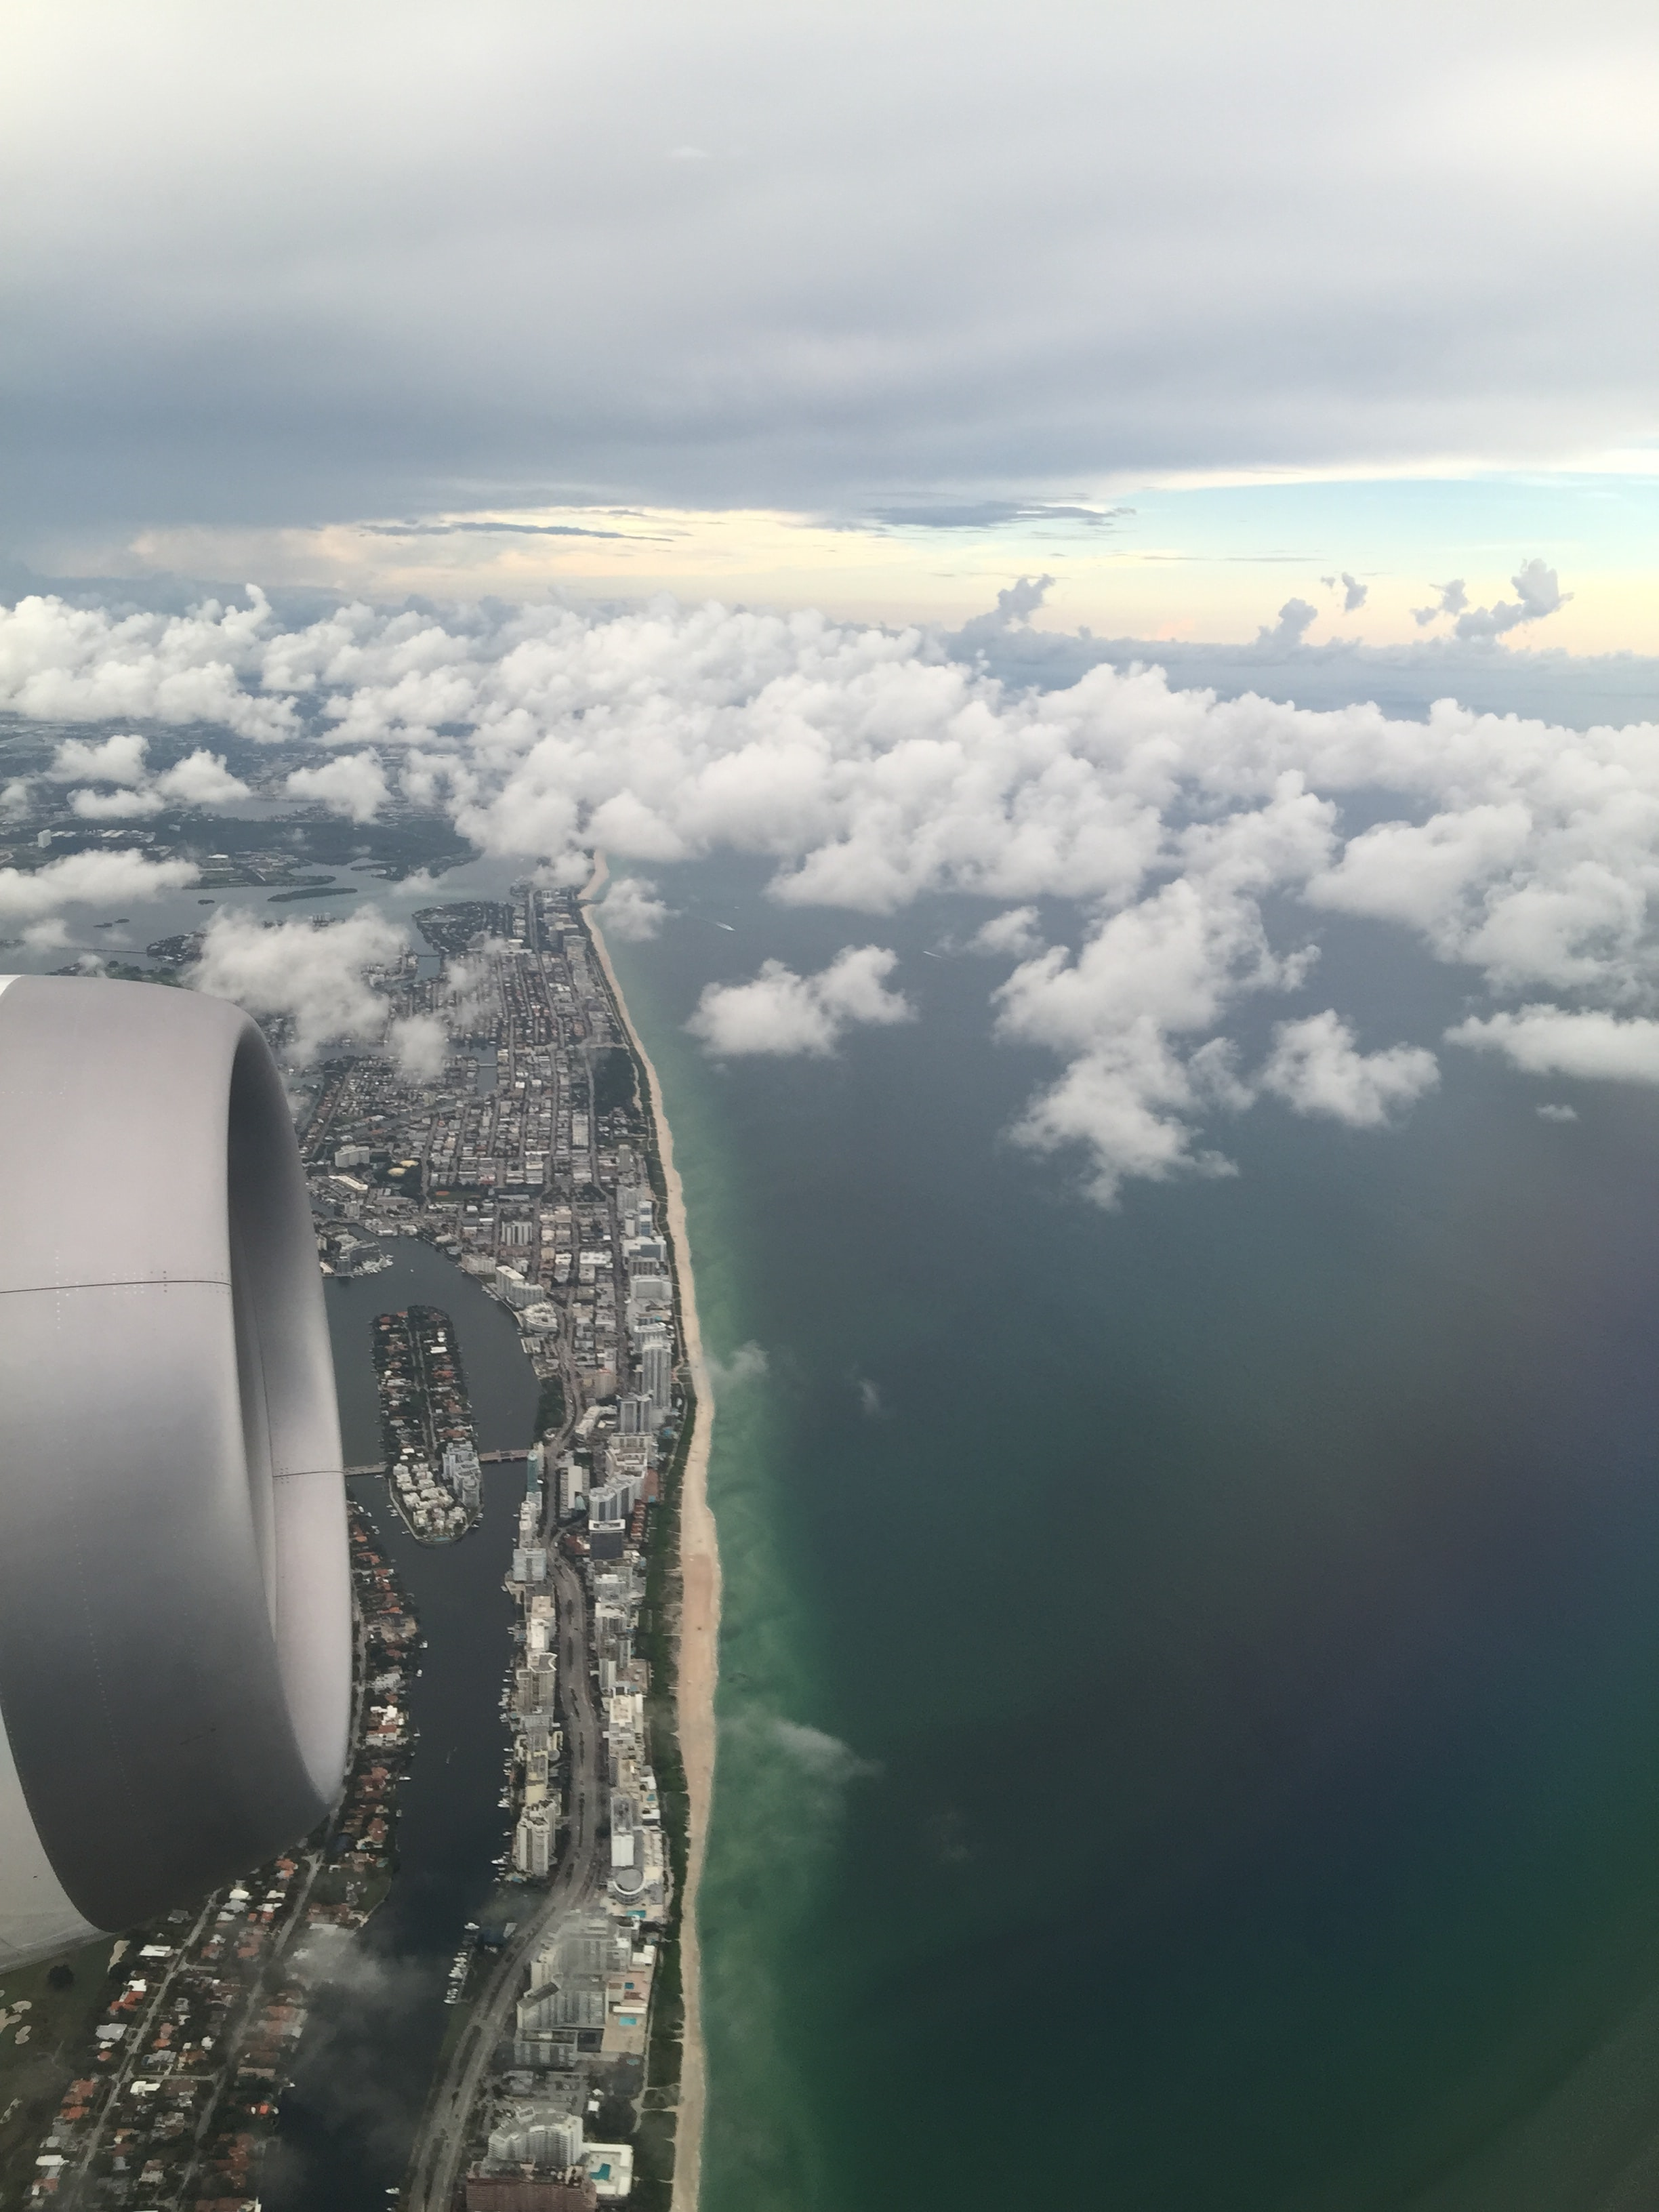 View of the Miami Beach coastline from an airplane